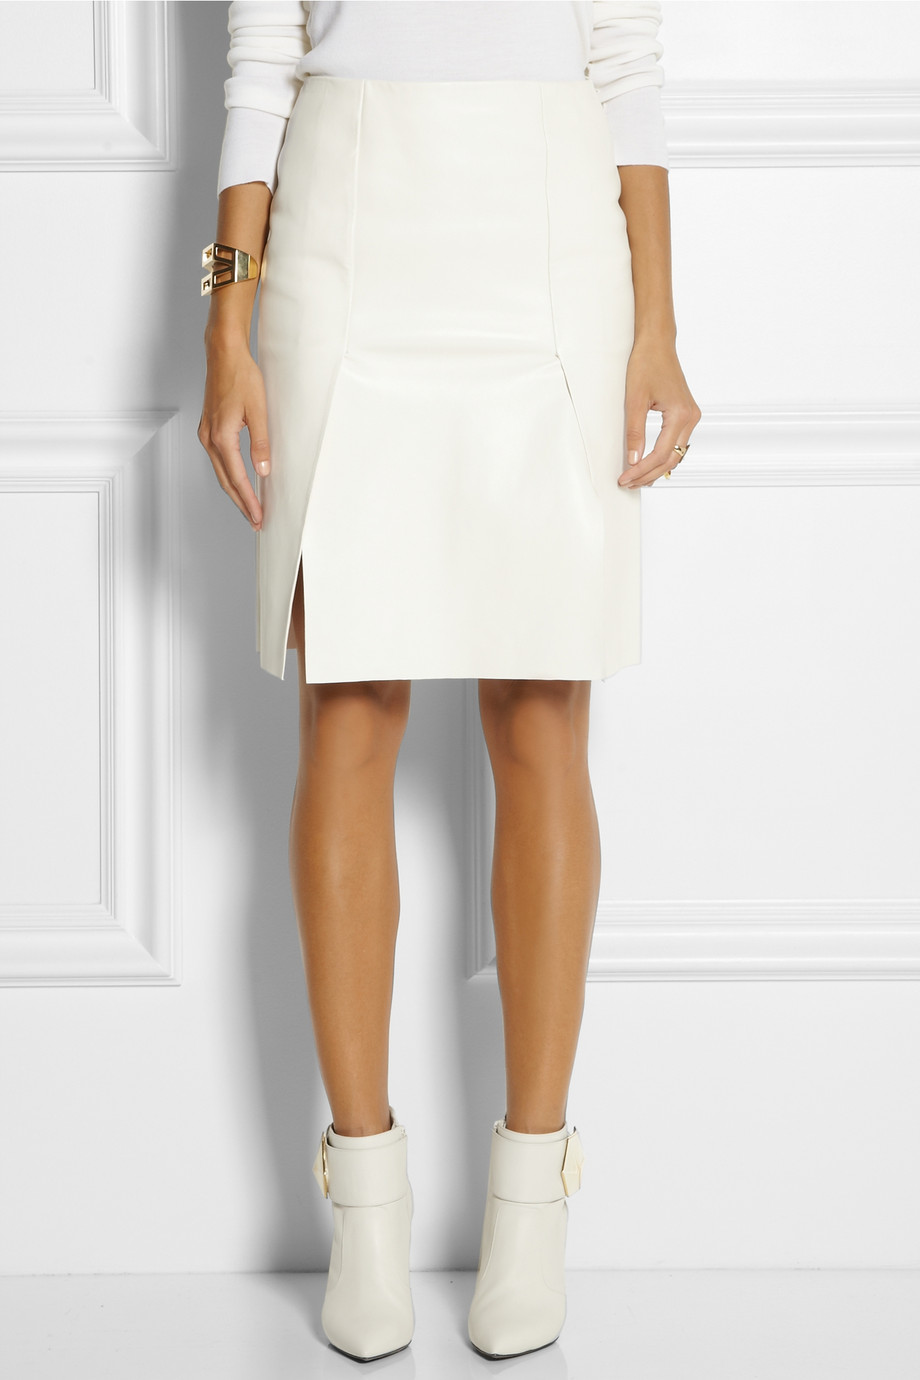 Lyst Fendi Leather Pencil Skirt In White